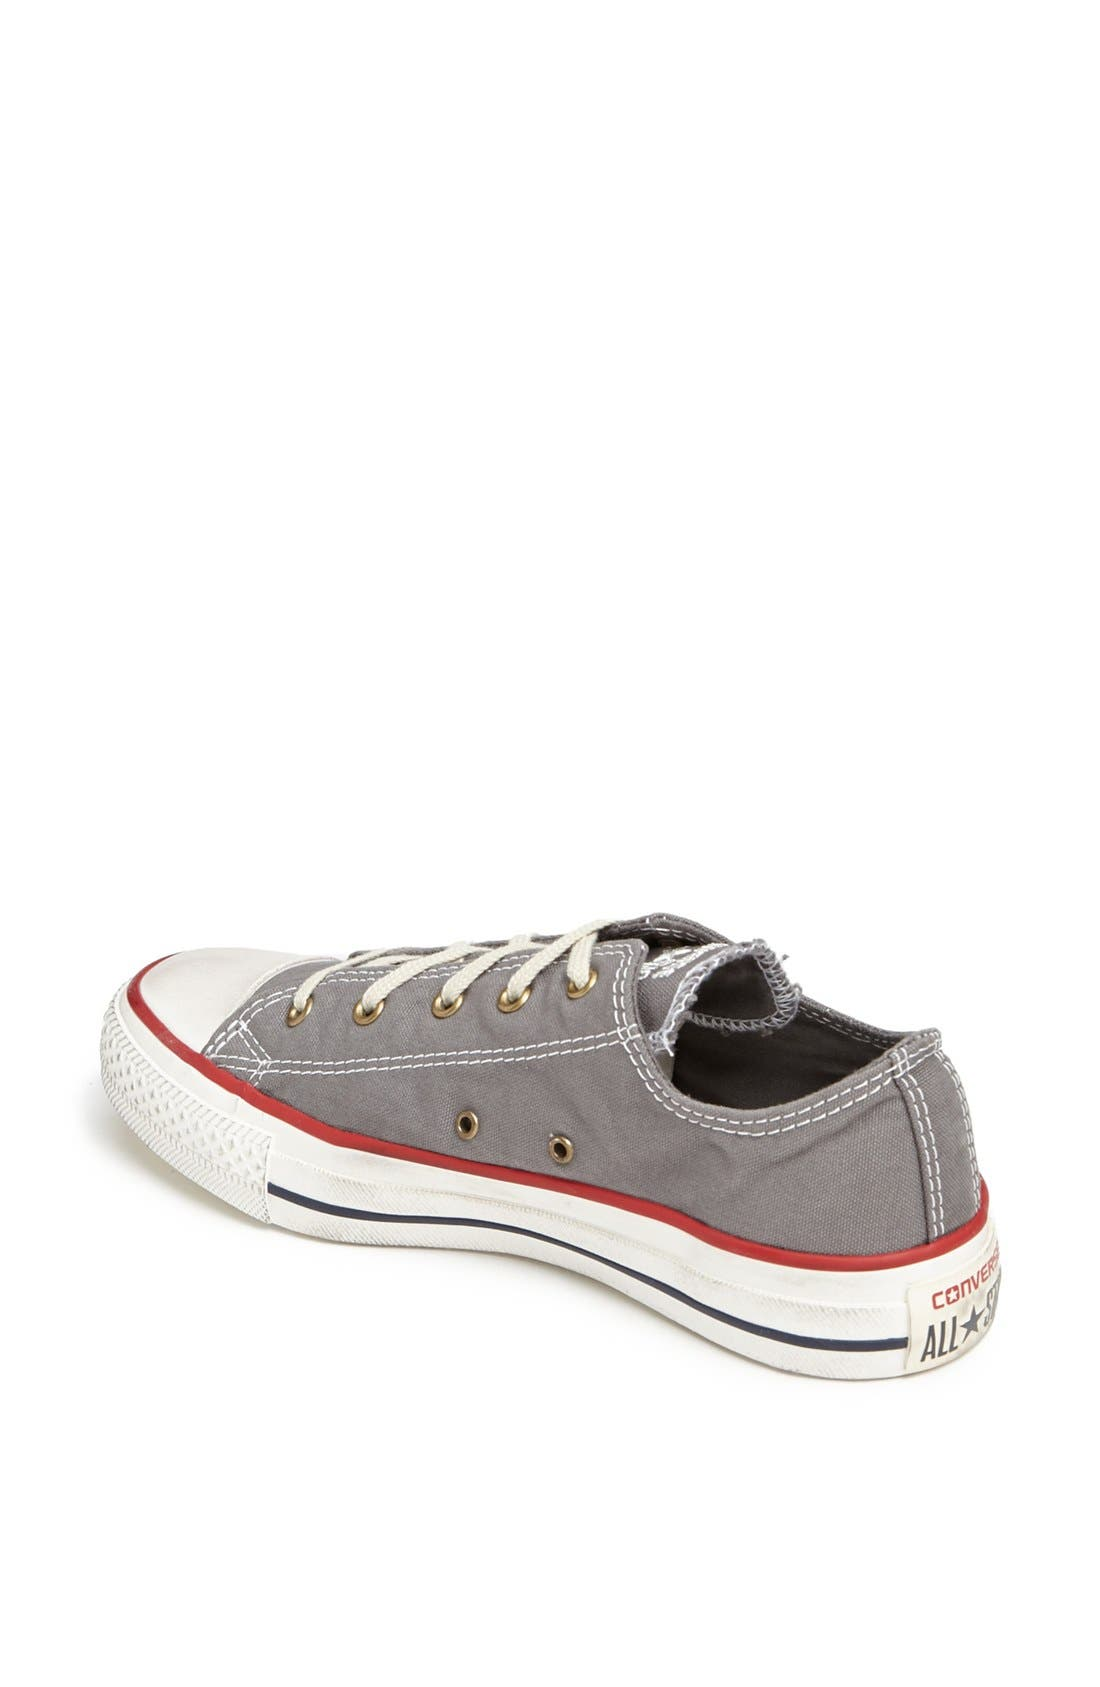 Alternate Image 2  - Converse Chuck Taylor® All Star® 'Washed' Sneaker (Women)